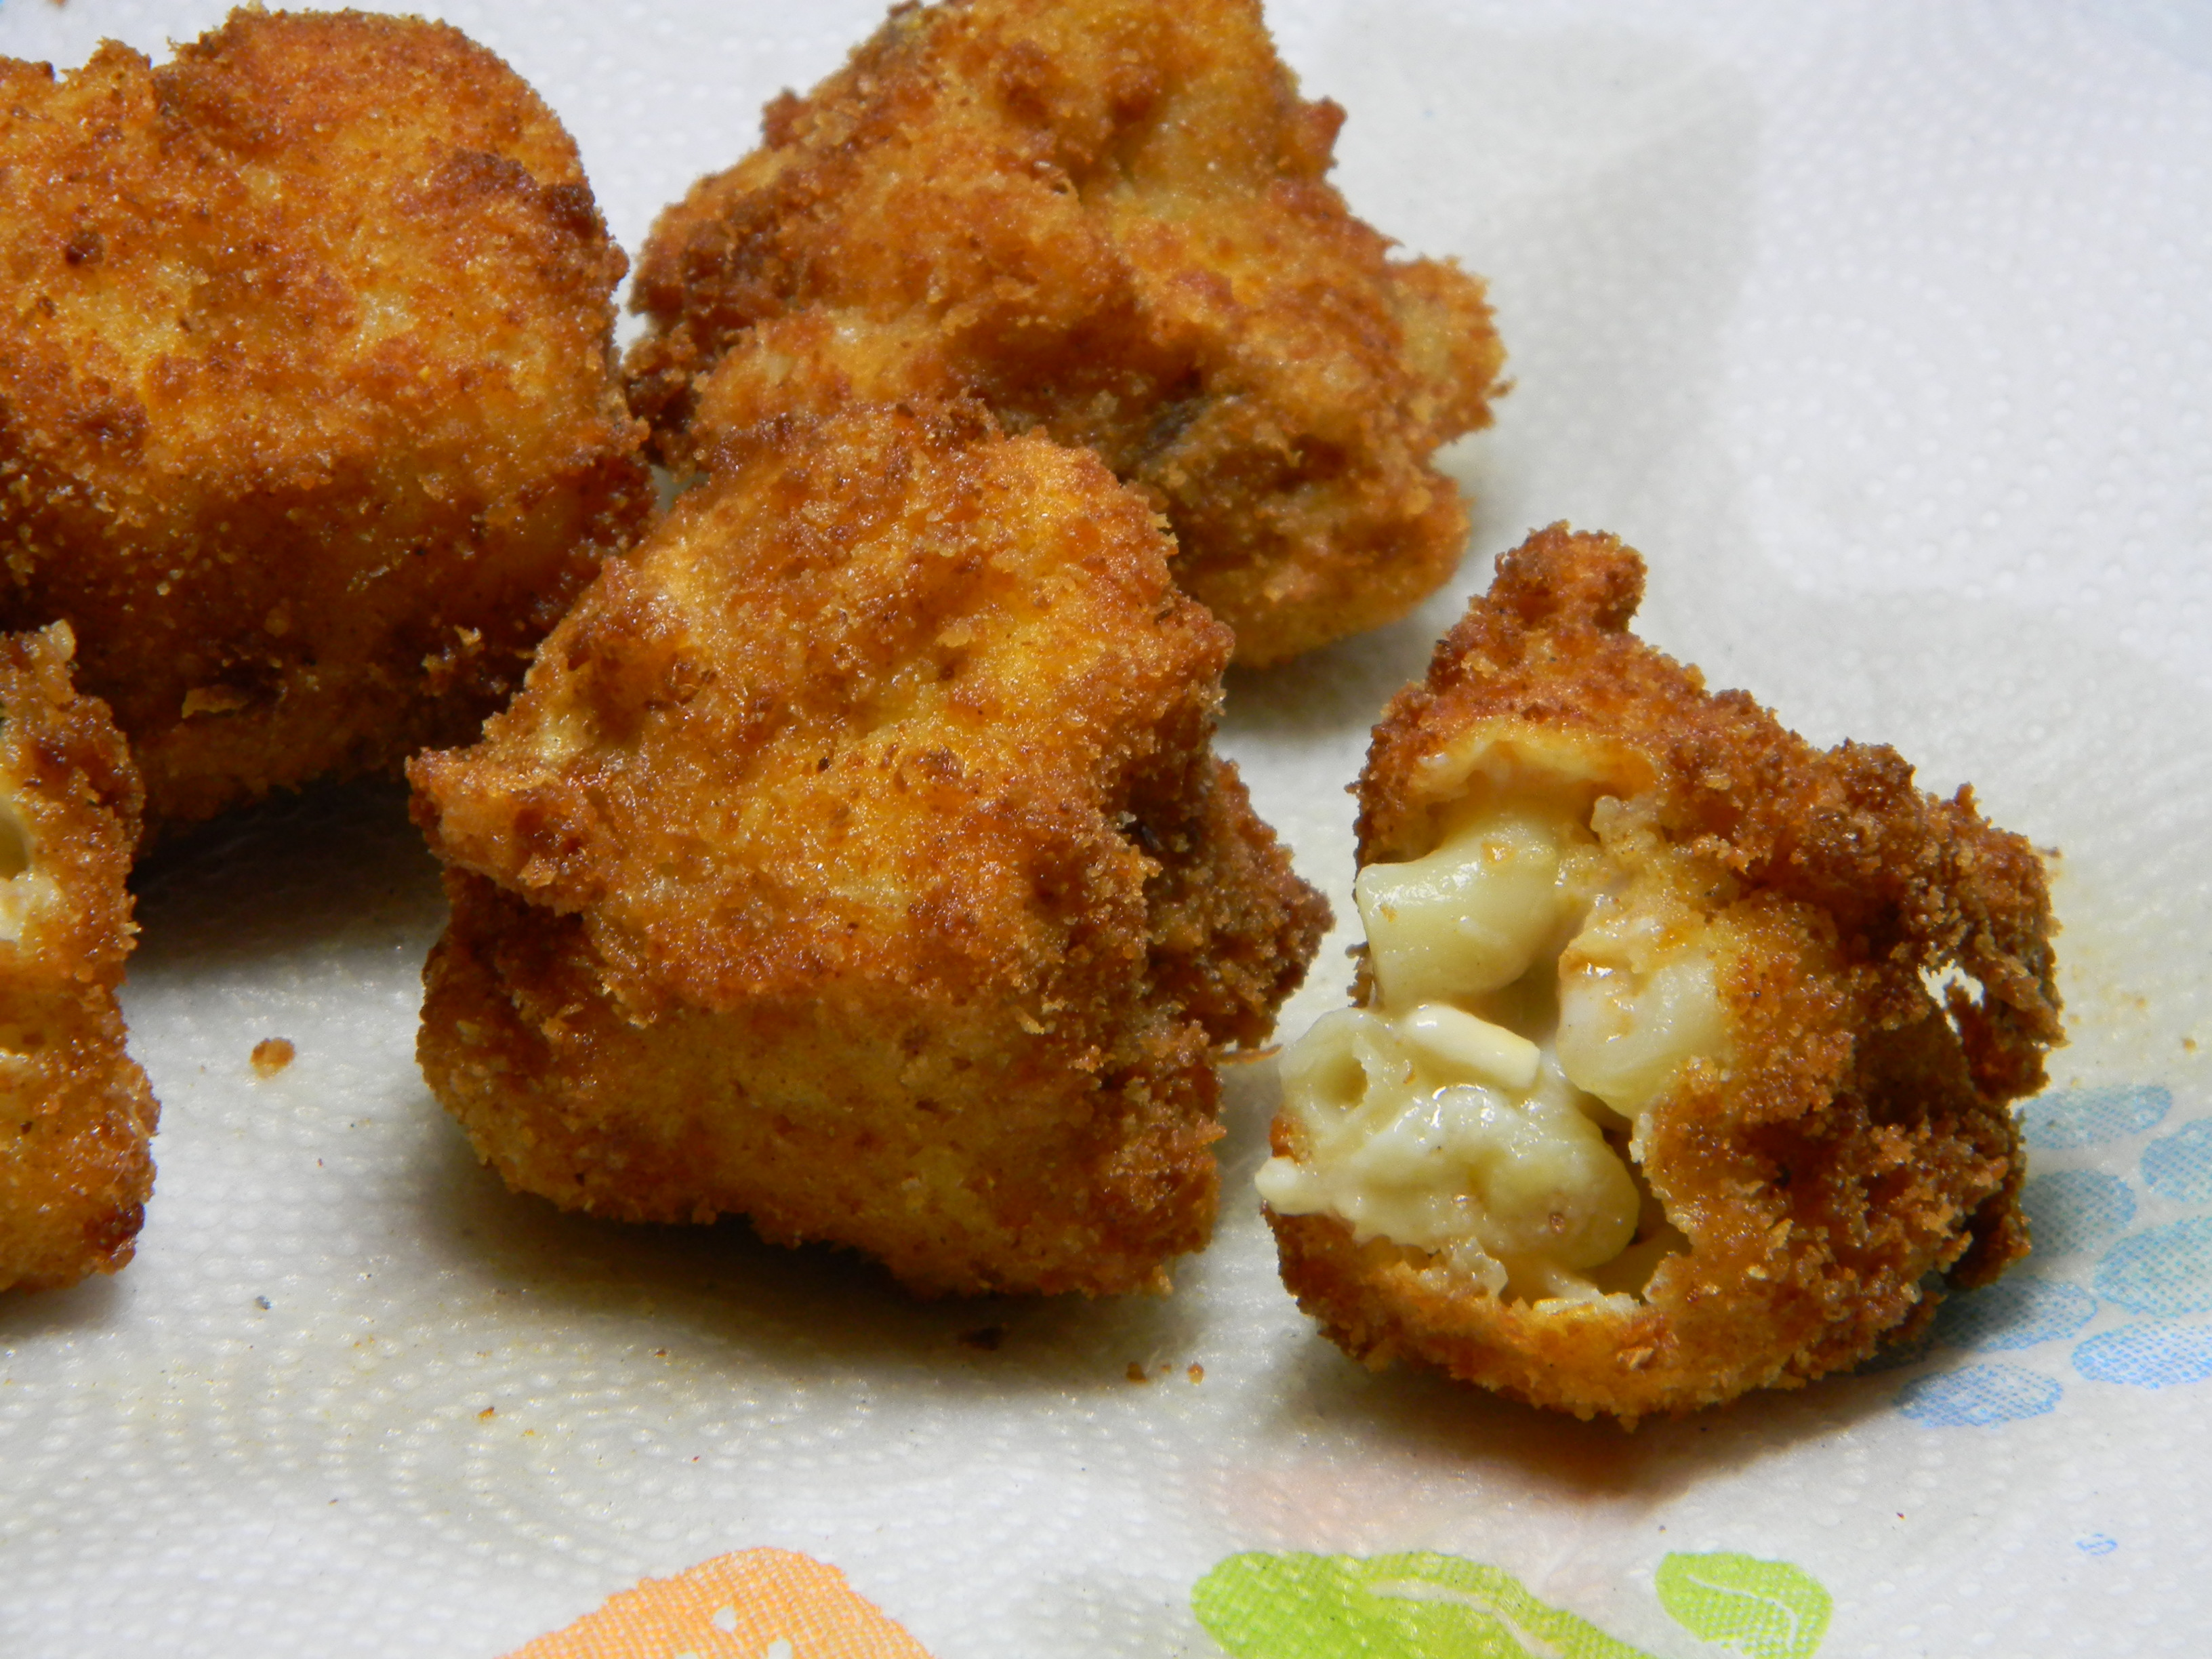 Fried Mac N' Cheese Bites | 2frugalfoodies